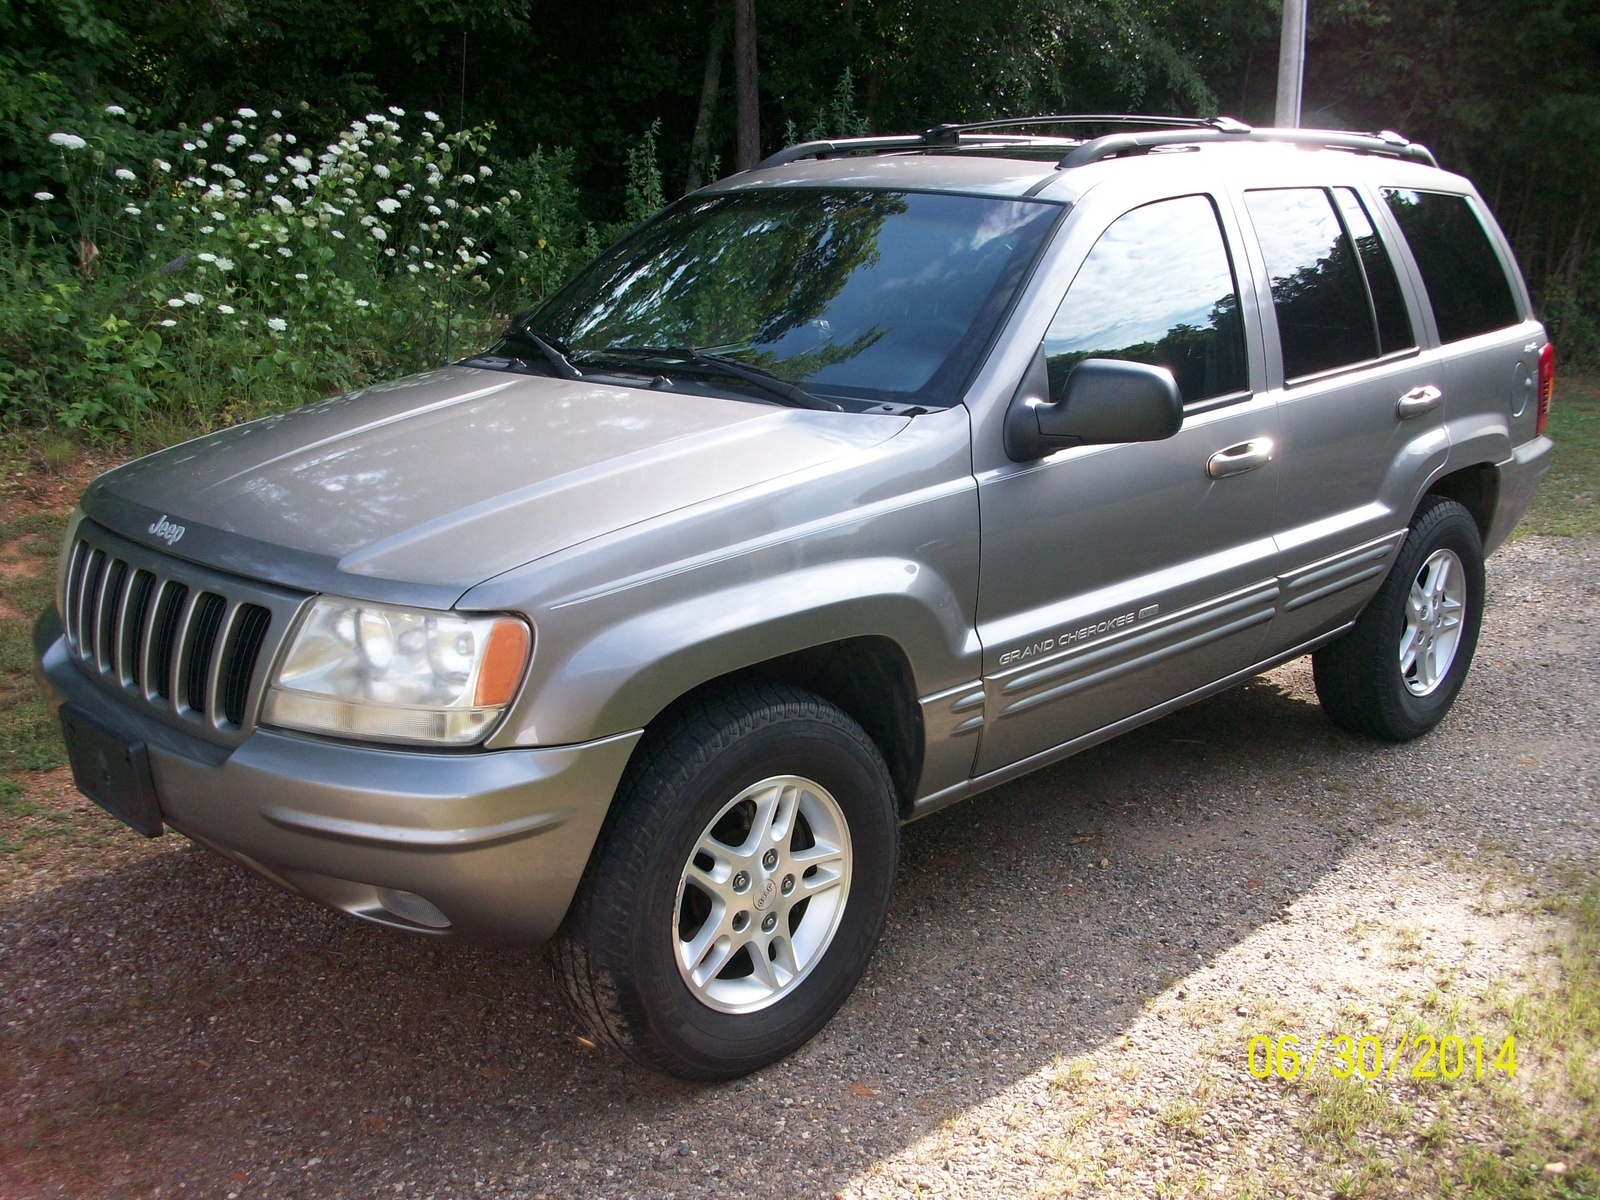 jeep grand cherokee picture - photo #42